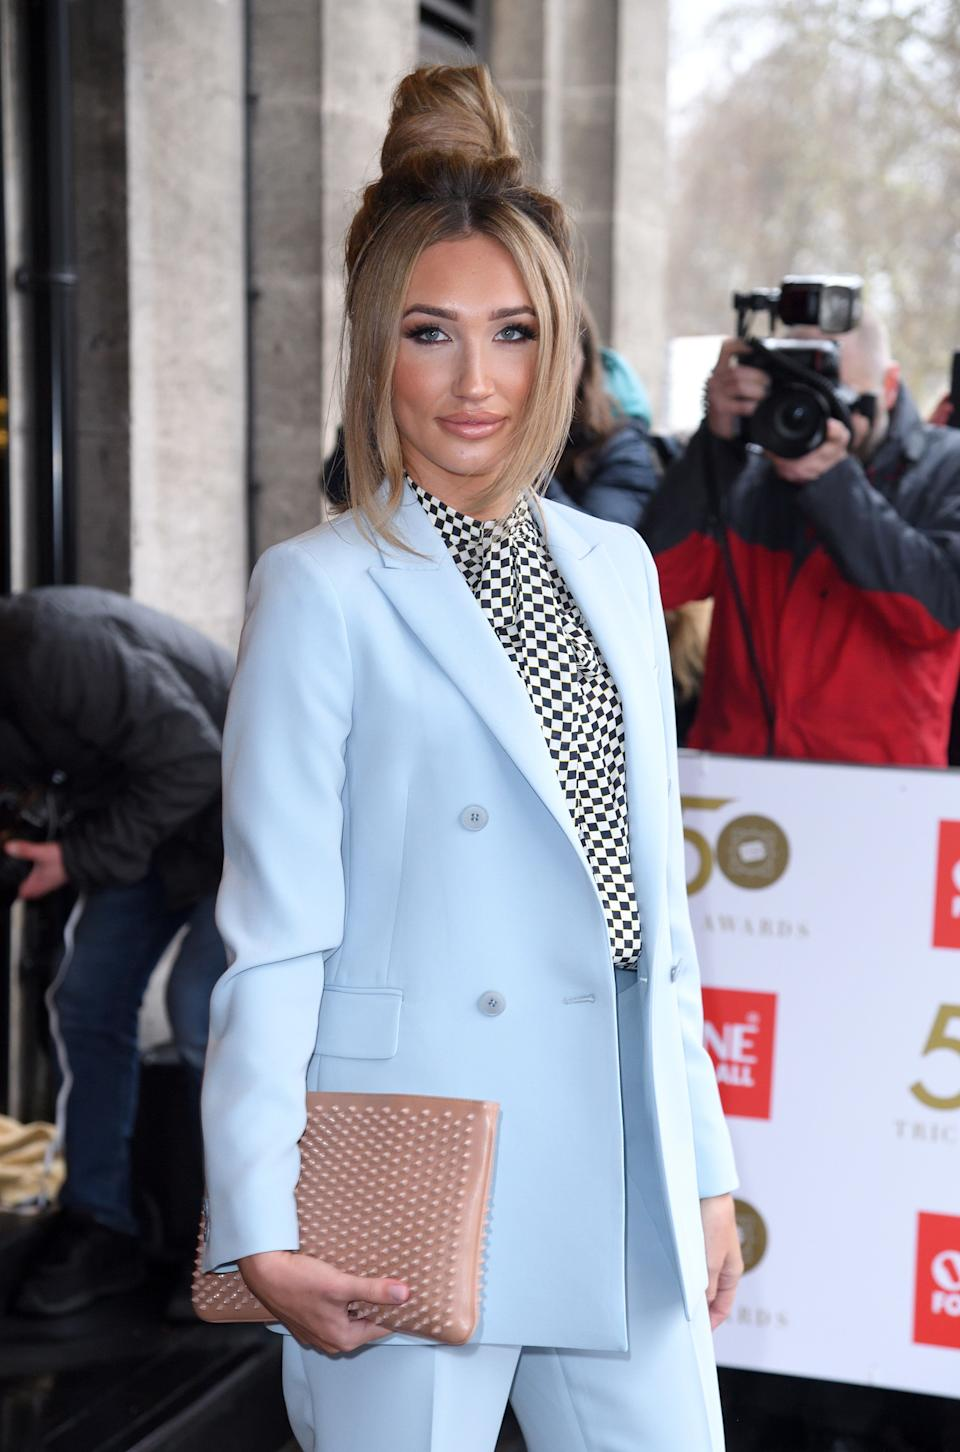 It's tough to imagine that just a few years ago, even the most die-hard reality TV fans still hadn't heard of Megan McKenna.<br /><br />She first appeared on Ex On The Beach in 2015, before making the jump to Celebrity Big Brother, which led to her becoming a full-time TOWIE cast member. Since then, she's also appeared on Celebs Go Dating and Celebs On The Farm.<br /><br />What you mightn't know is that Megan also appeared on both The X Factor and Britain's Got Talent before shooting to fame.